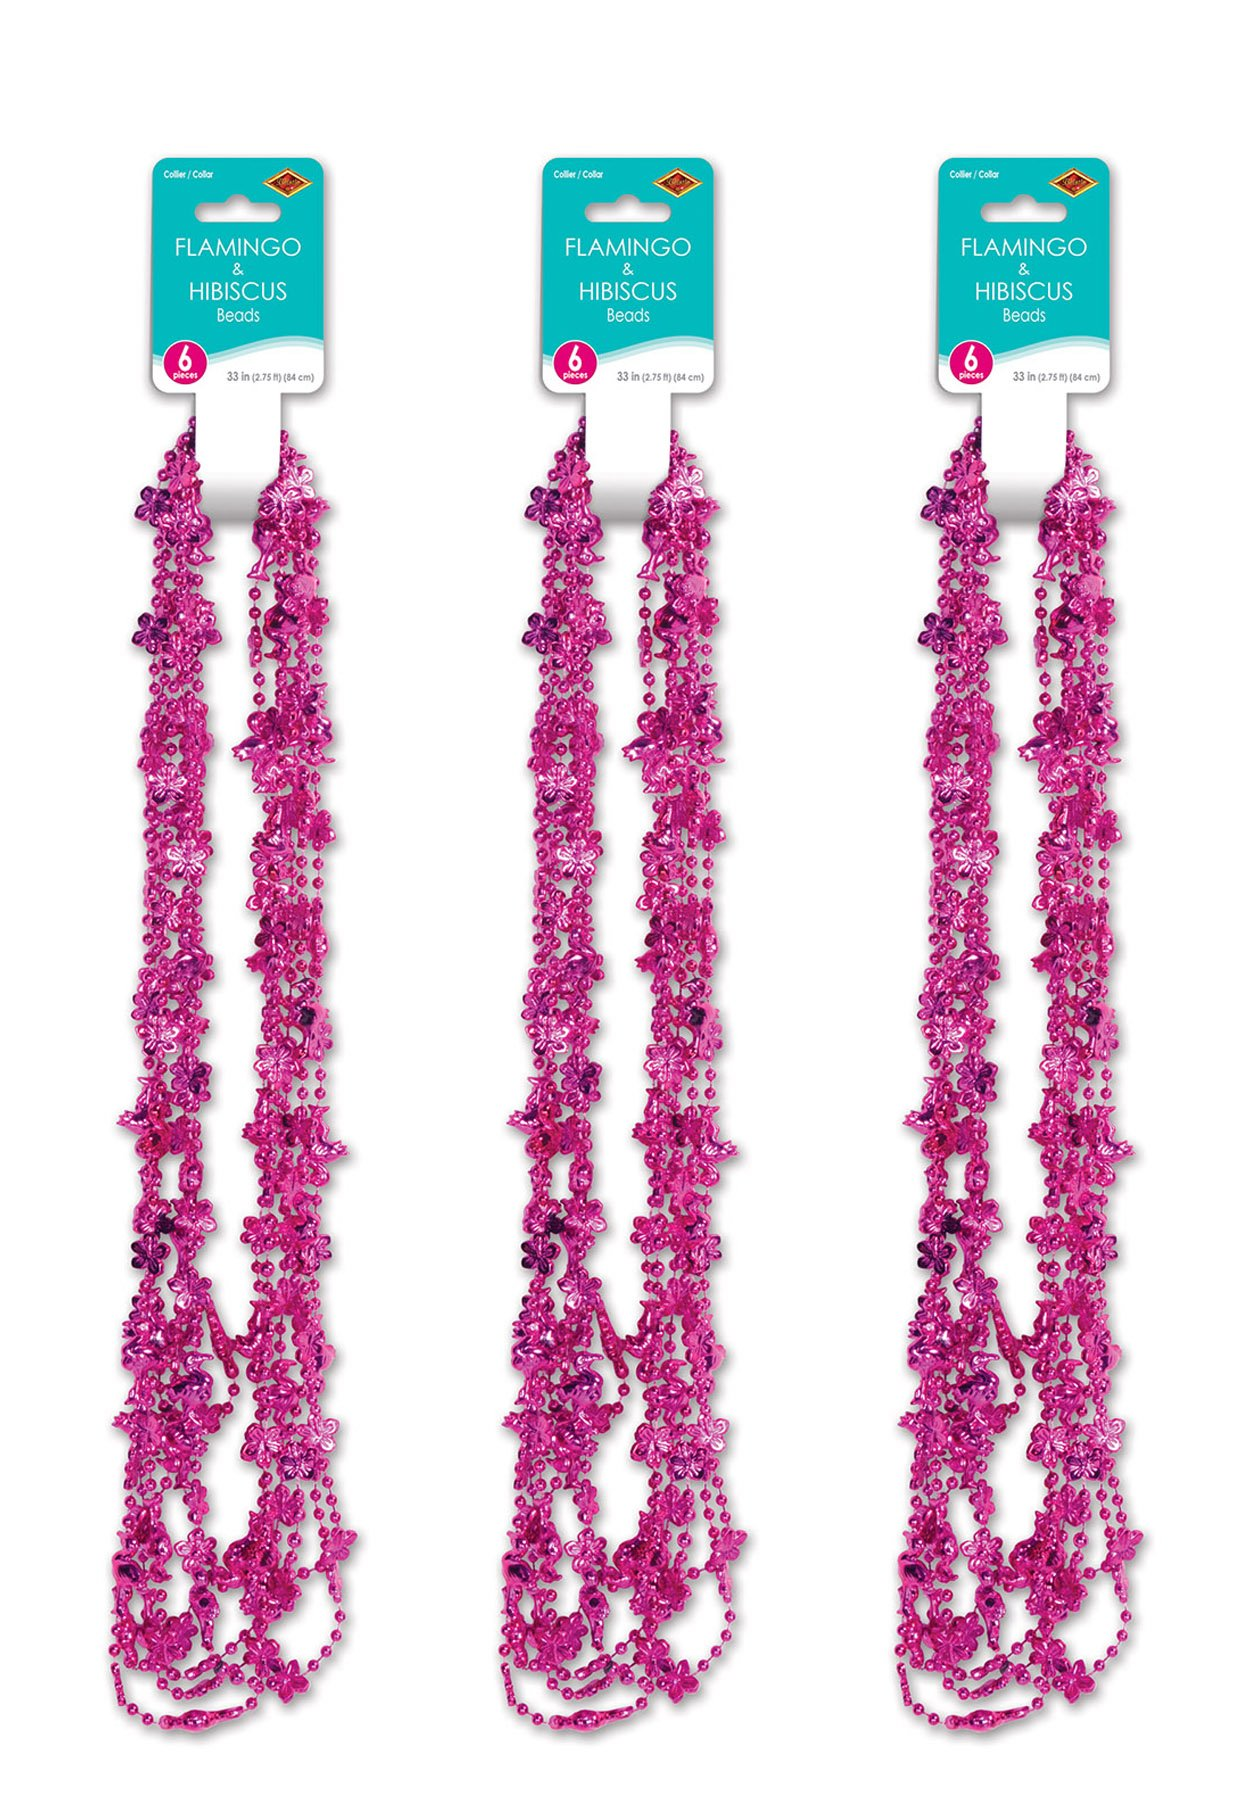 Beistle 52172 18 Piece Flamingo and Hibiscus Party Beads, 33'', Hot Pink by Beistle (Image #1)